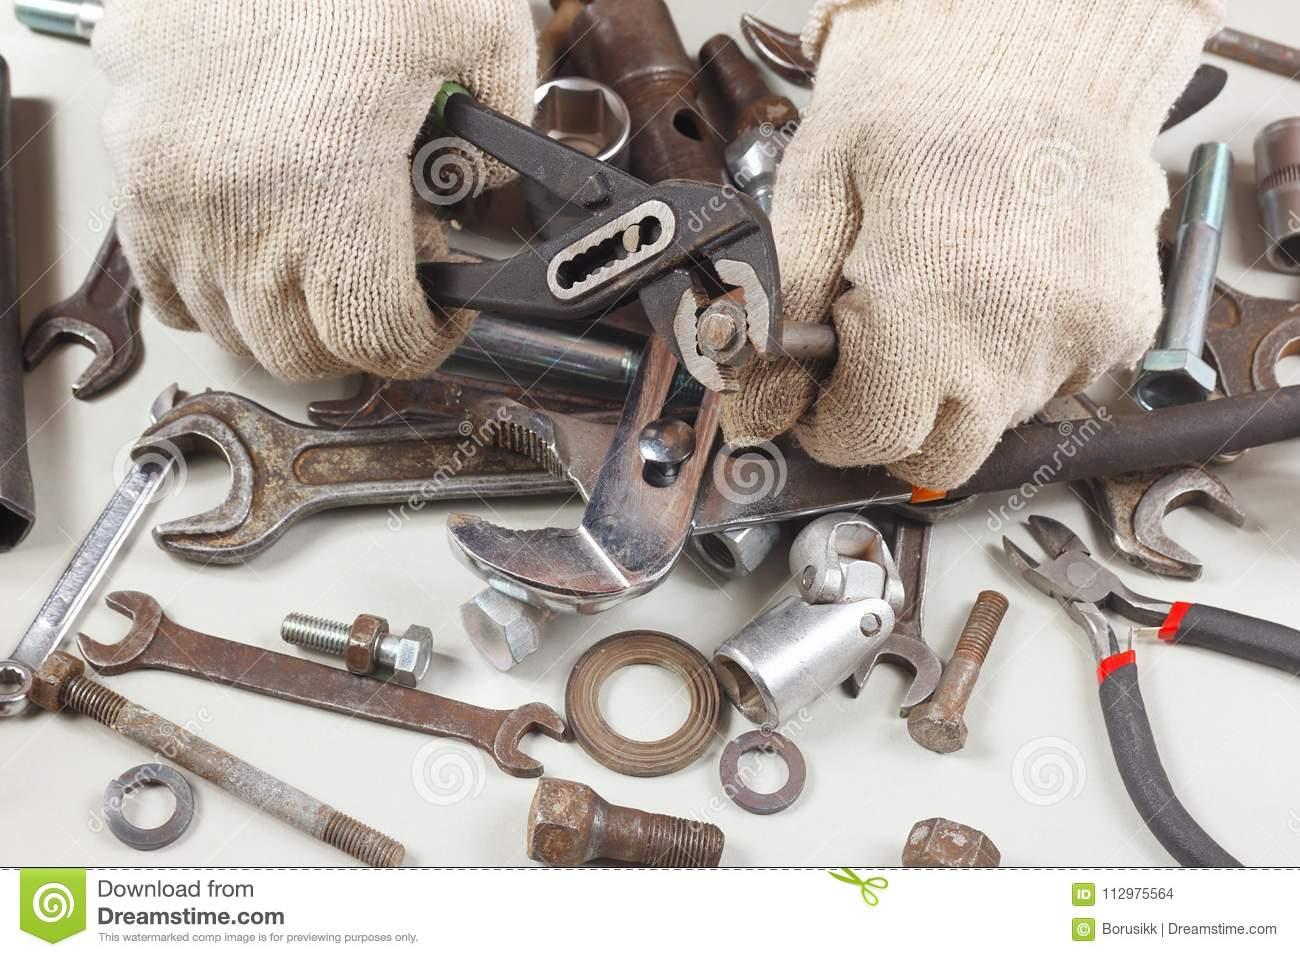 Hand of master in gloves with wrench to tighten the nut